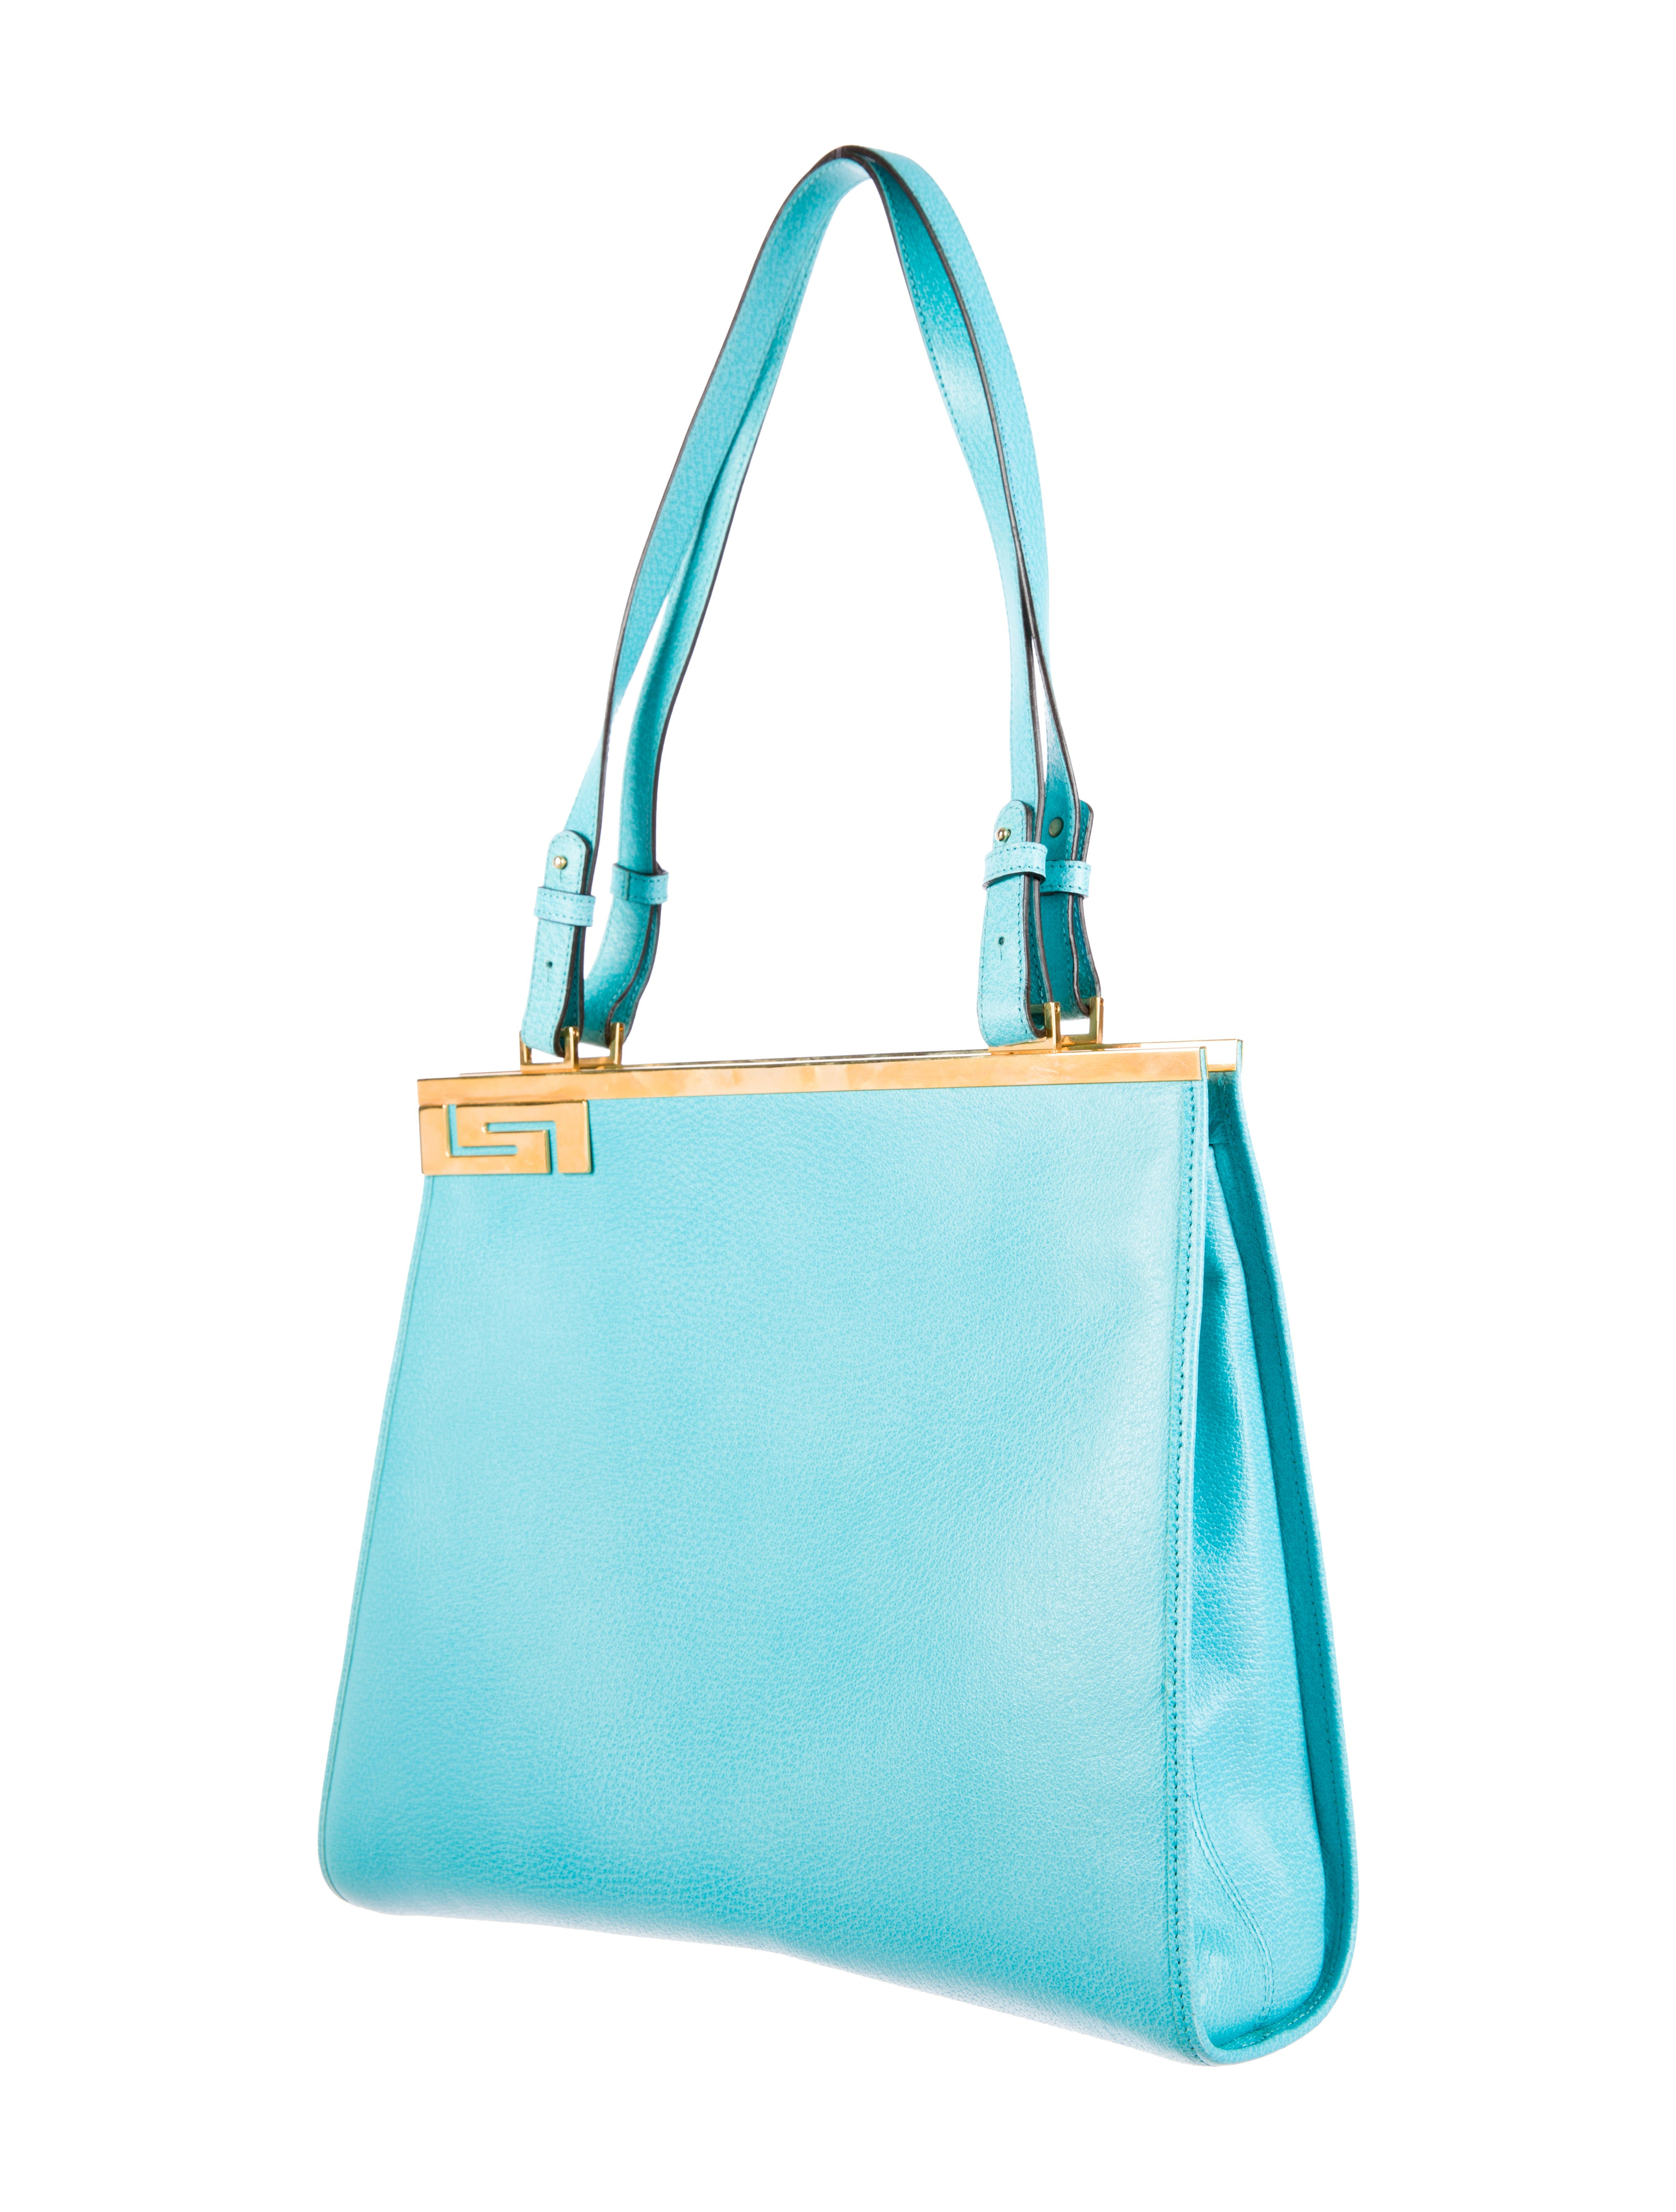 Versace Textured Leather Shoulder Bag Handbags  : VES248383enlarged from www.therealreal.com size 4094 x 5402 jpeg 1044kB